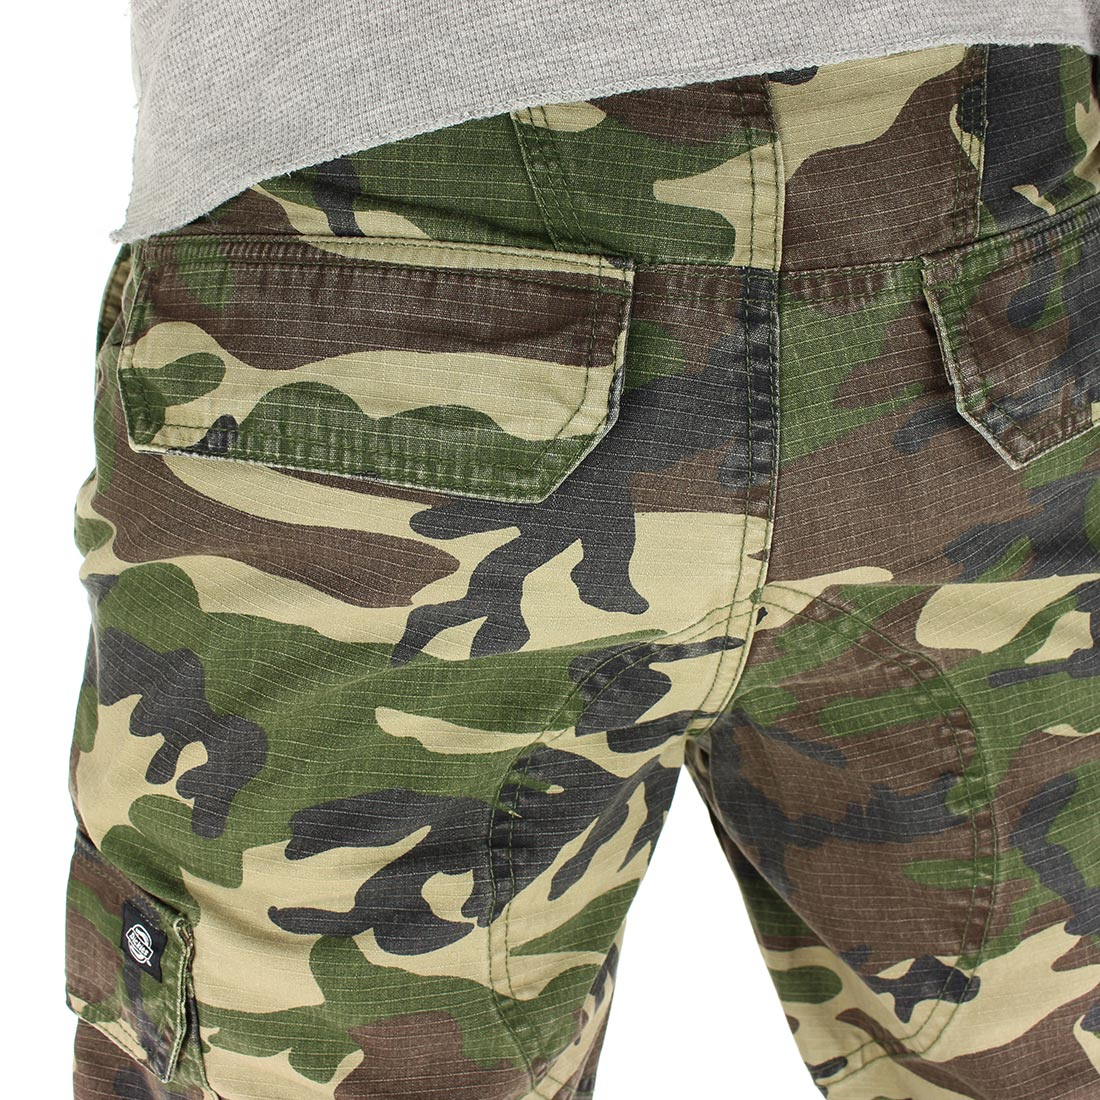 f50c6e4dc3 Dickies New York Cargo Pant - Camouflage